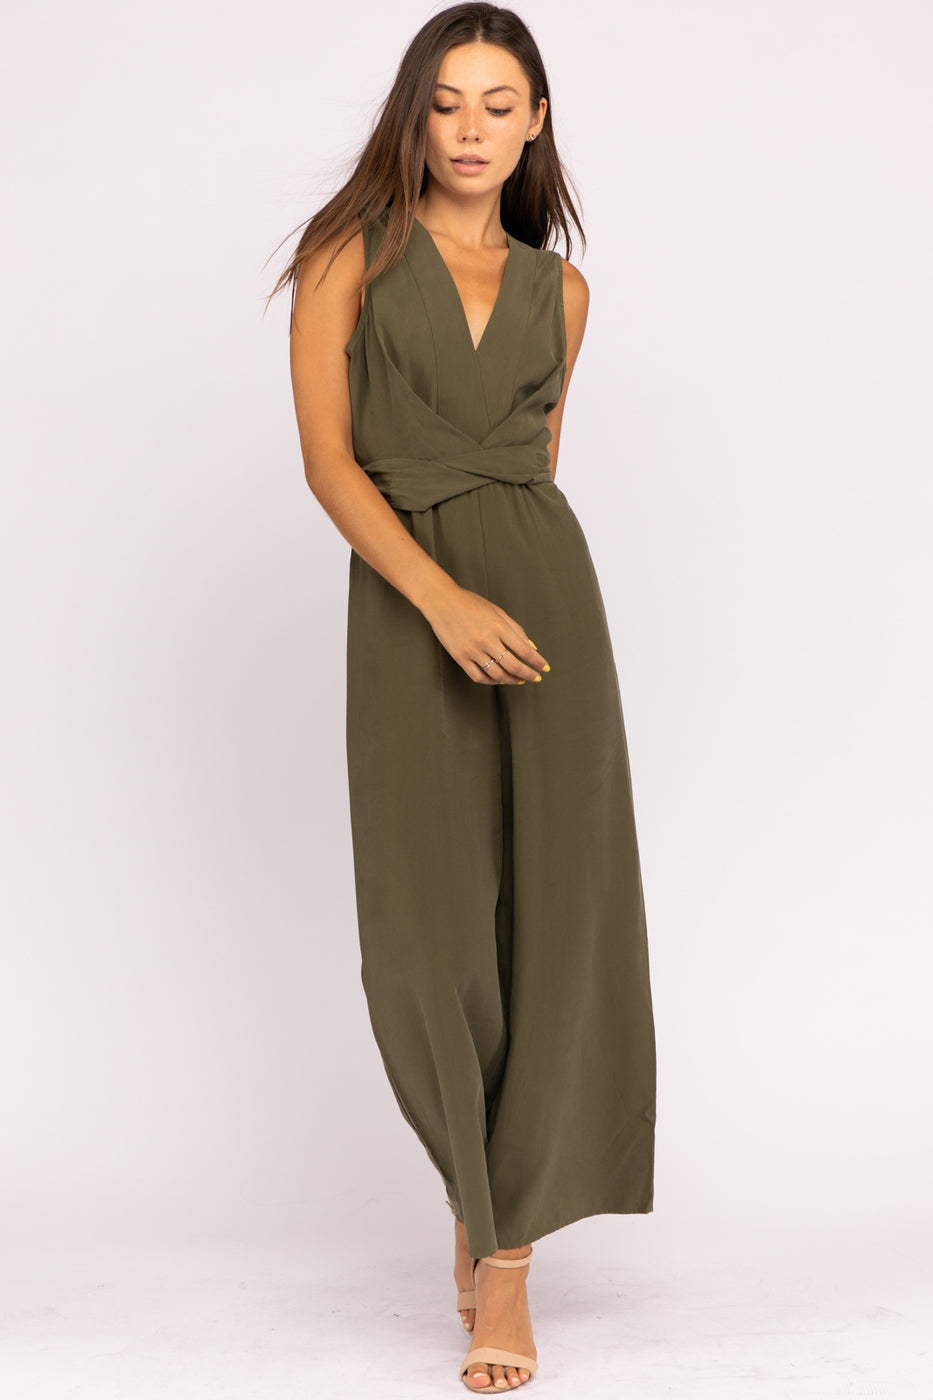 Tencel Sleeveless Jumpsuit With Waist Tie Detail In Olive Siin Bees